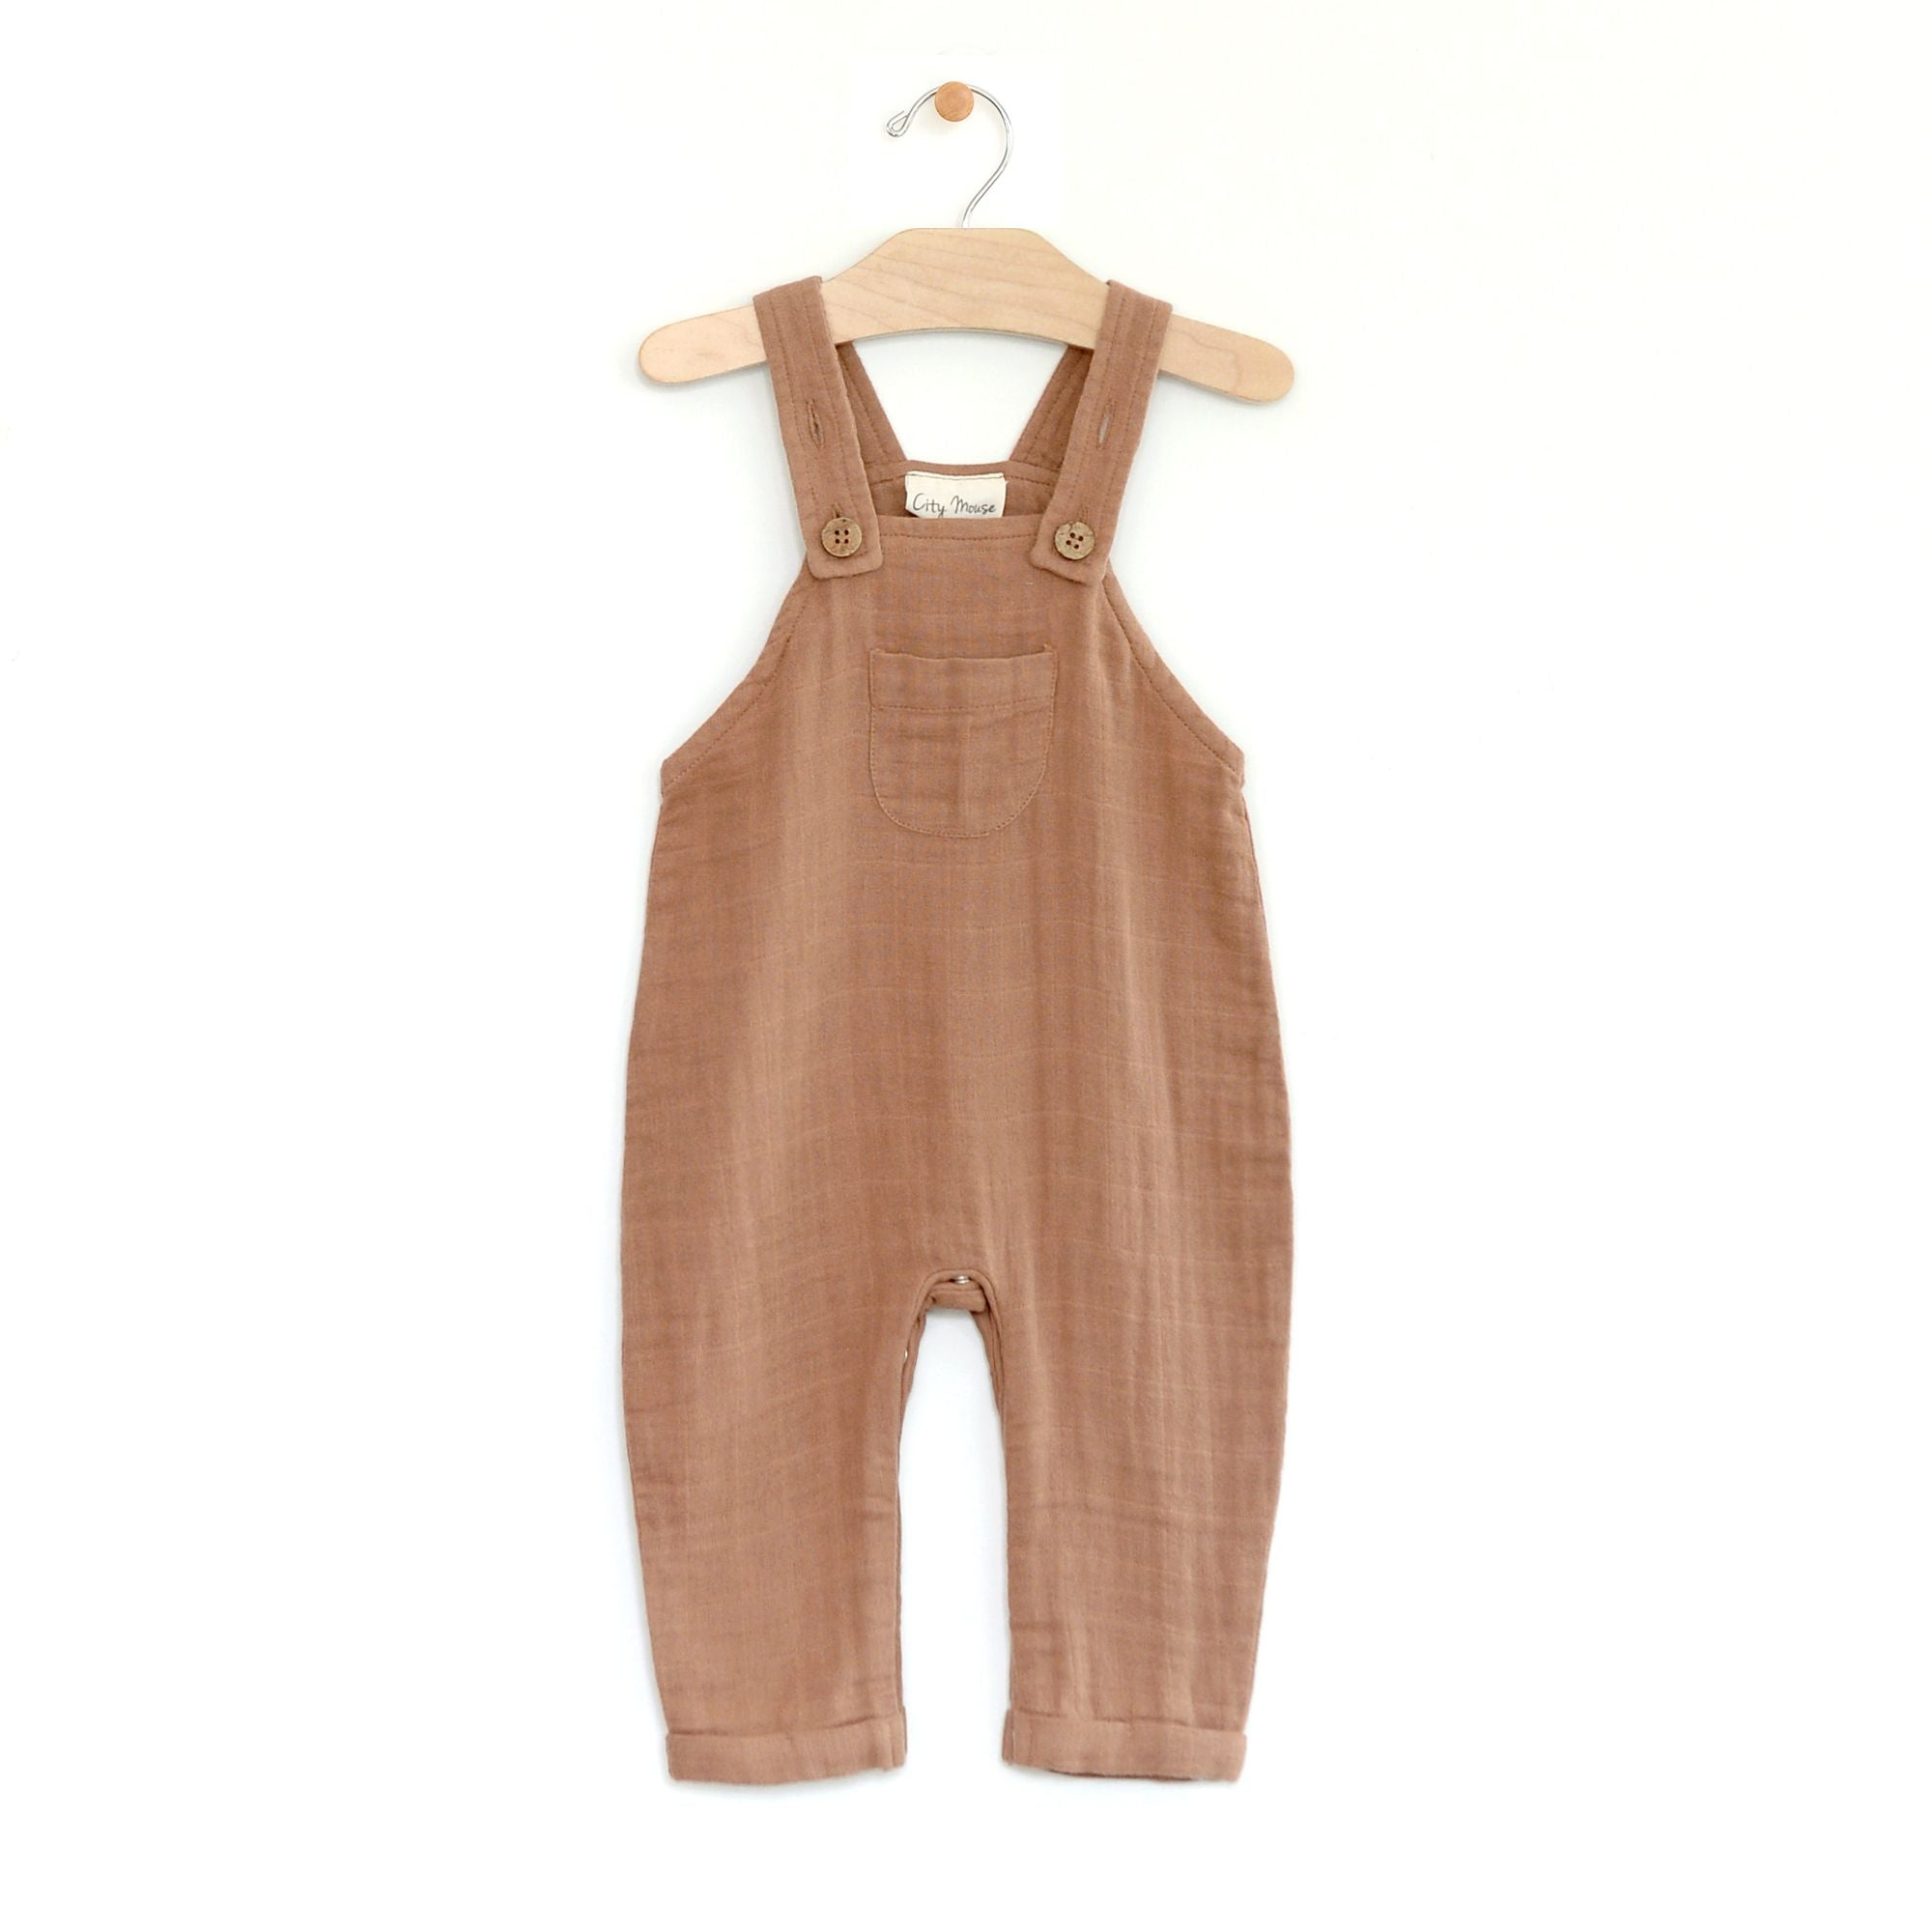 City Mouse Muslin Overall